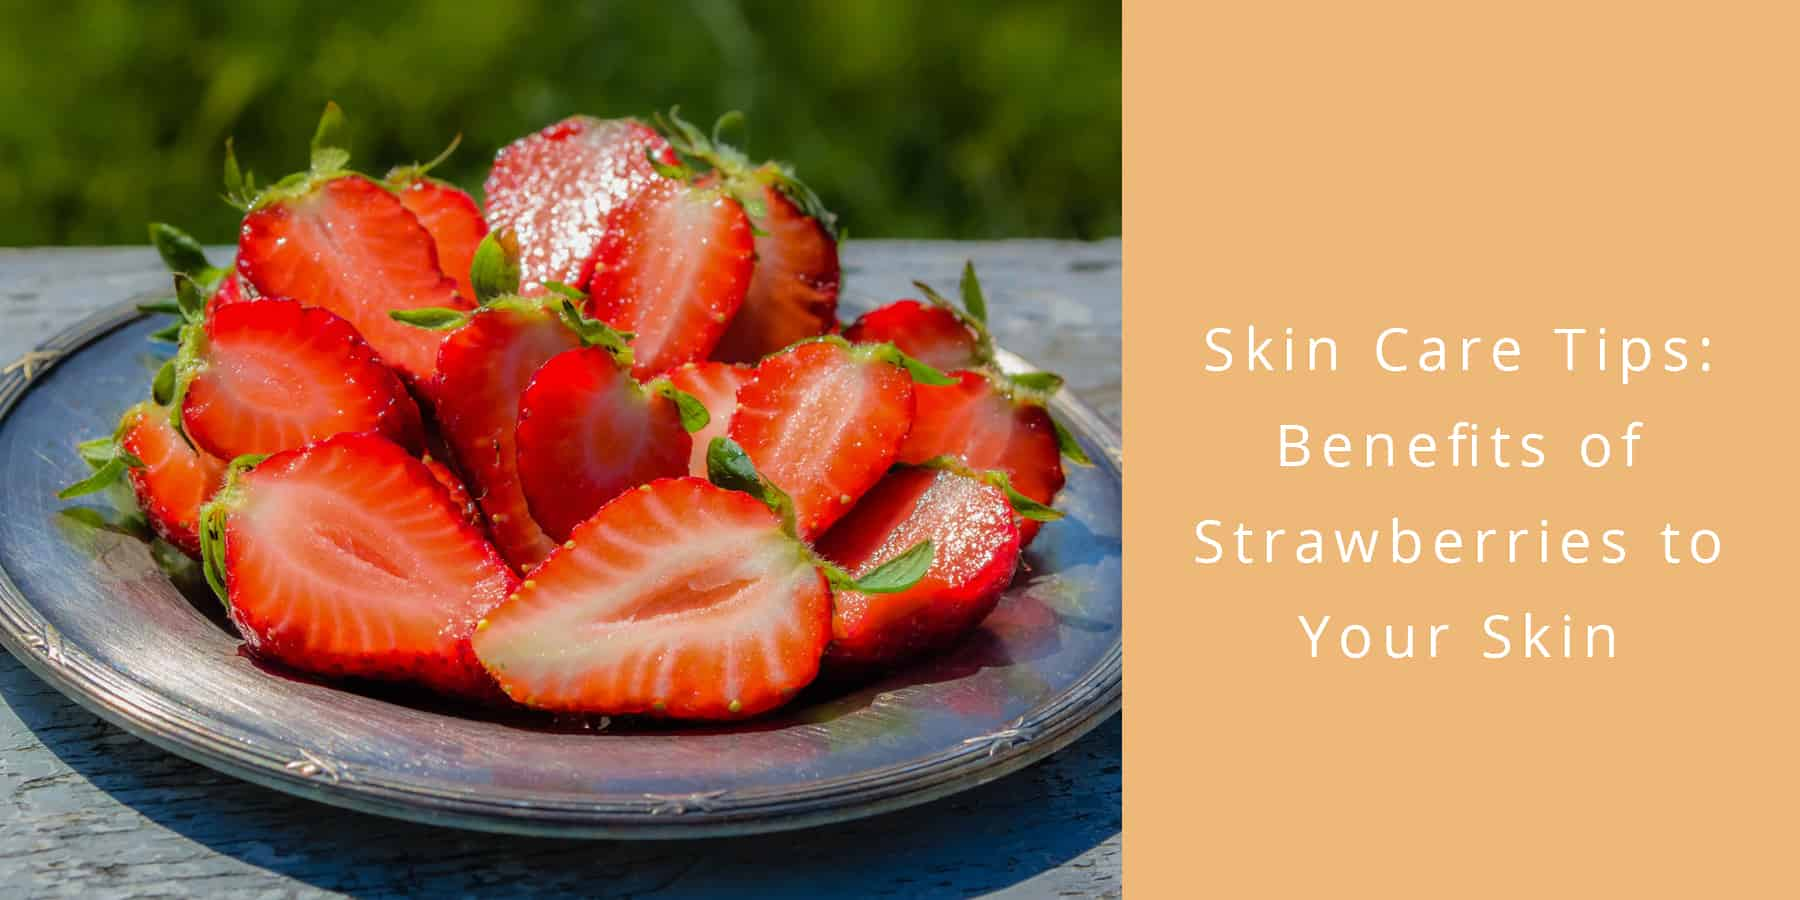 Skin Care Tips: Benefits of Strawberries to Your Skin